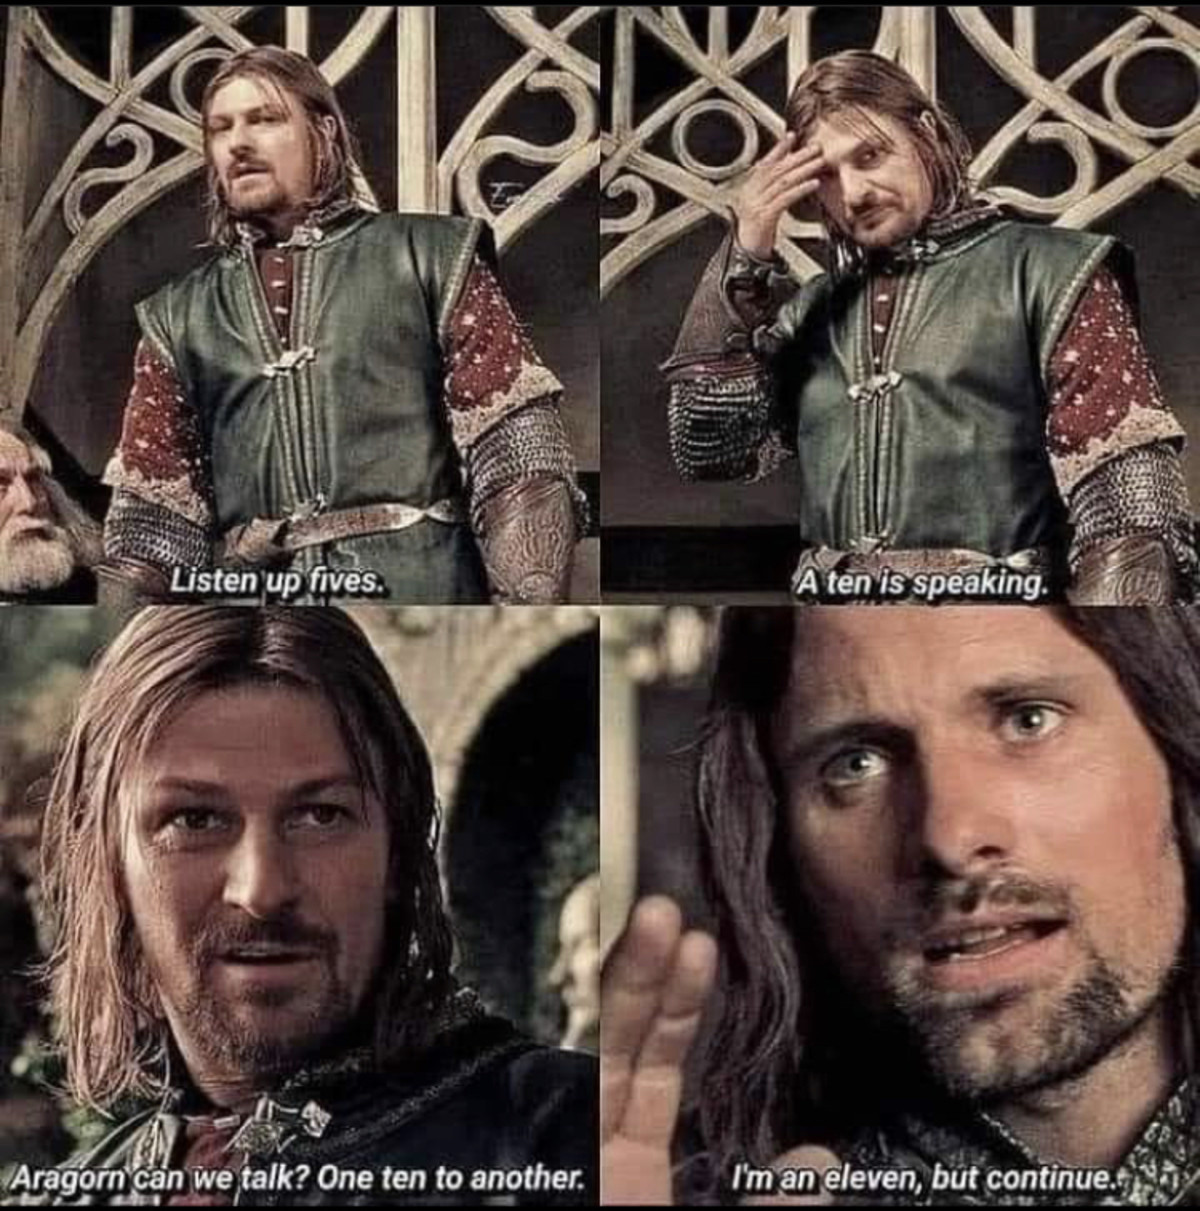 When the Bards become the party leaders. .. Fun fact, the actor who plays Aragorn (Viggo Mortensen) in Lord of the Rings the Fellowship of the Ring made a cameo appearance as the same character in Lord of